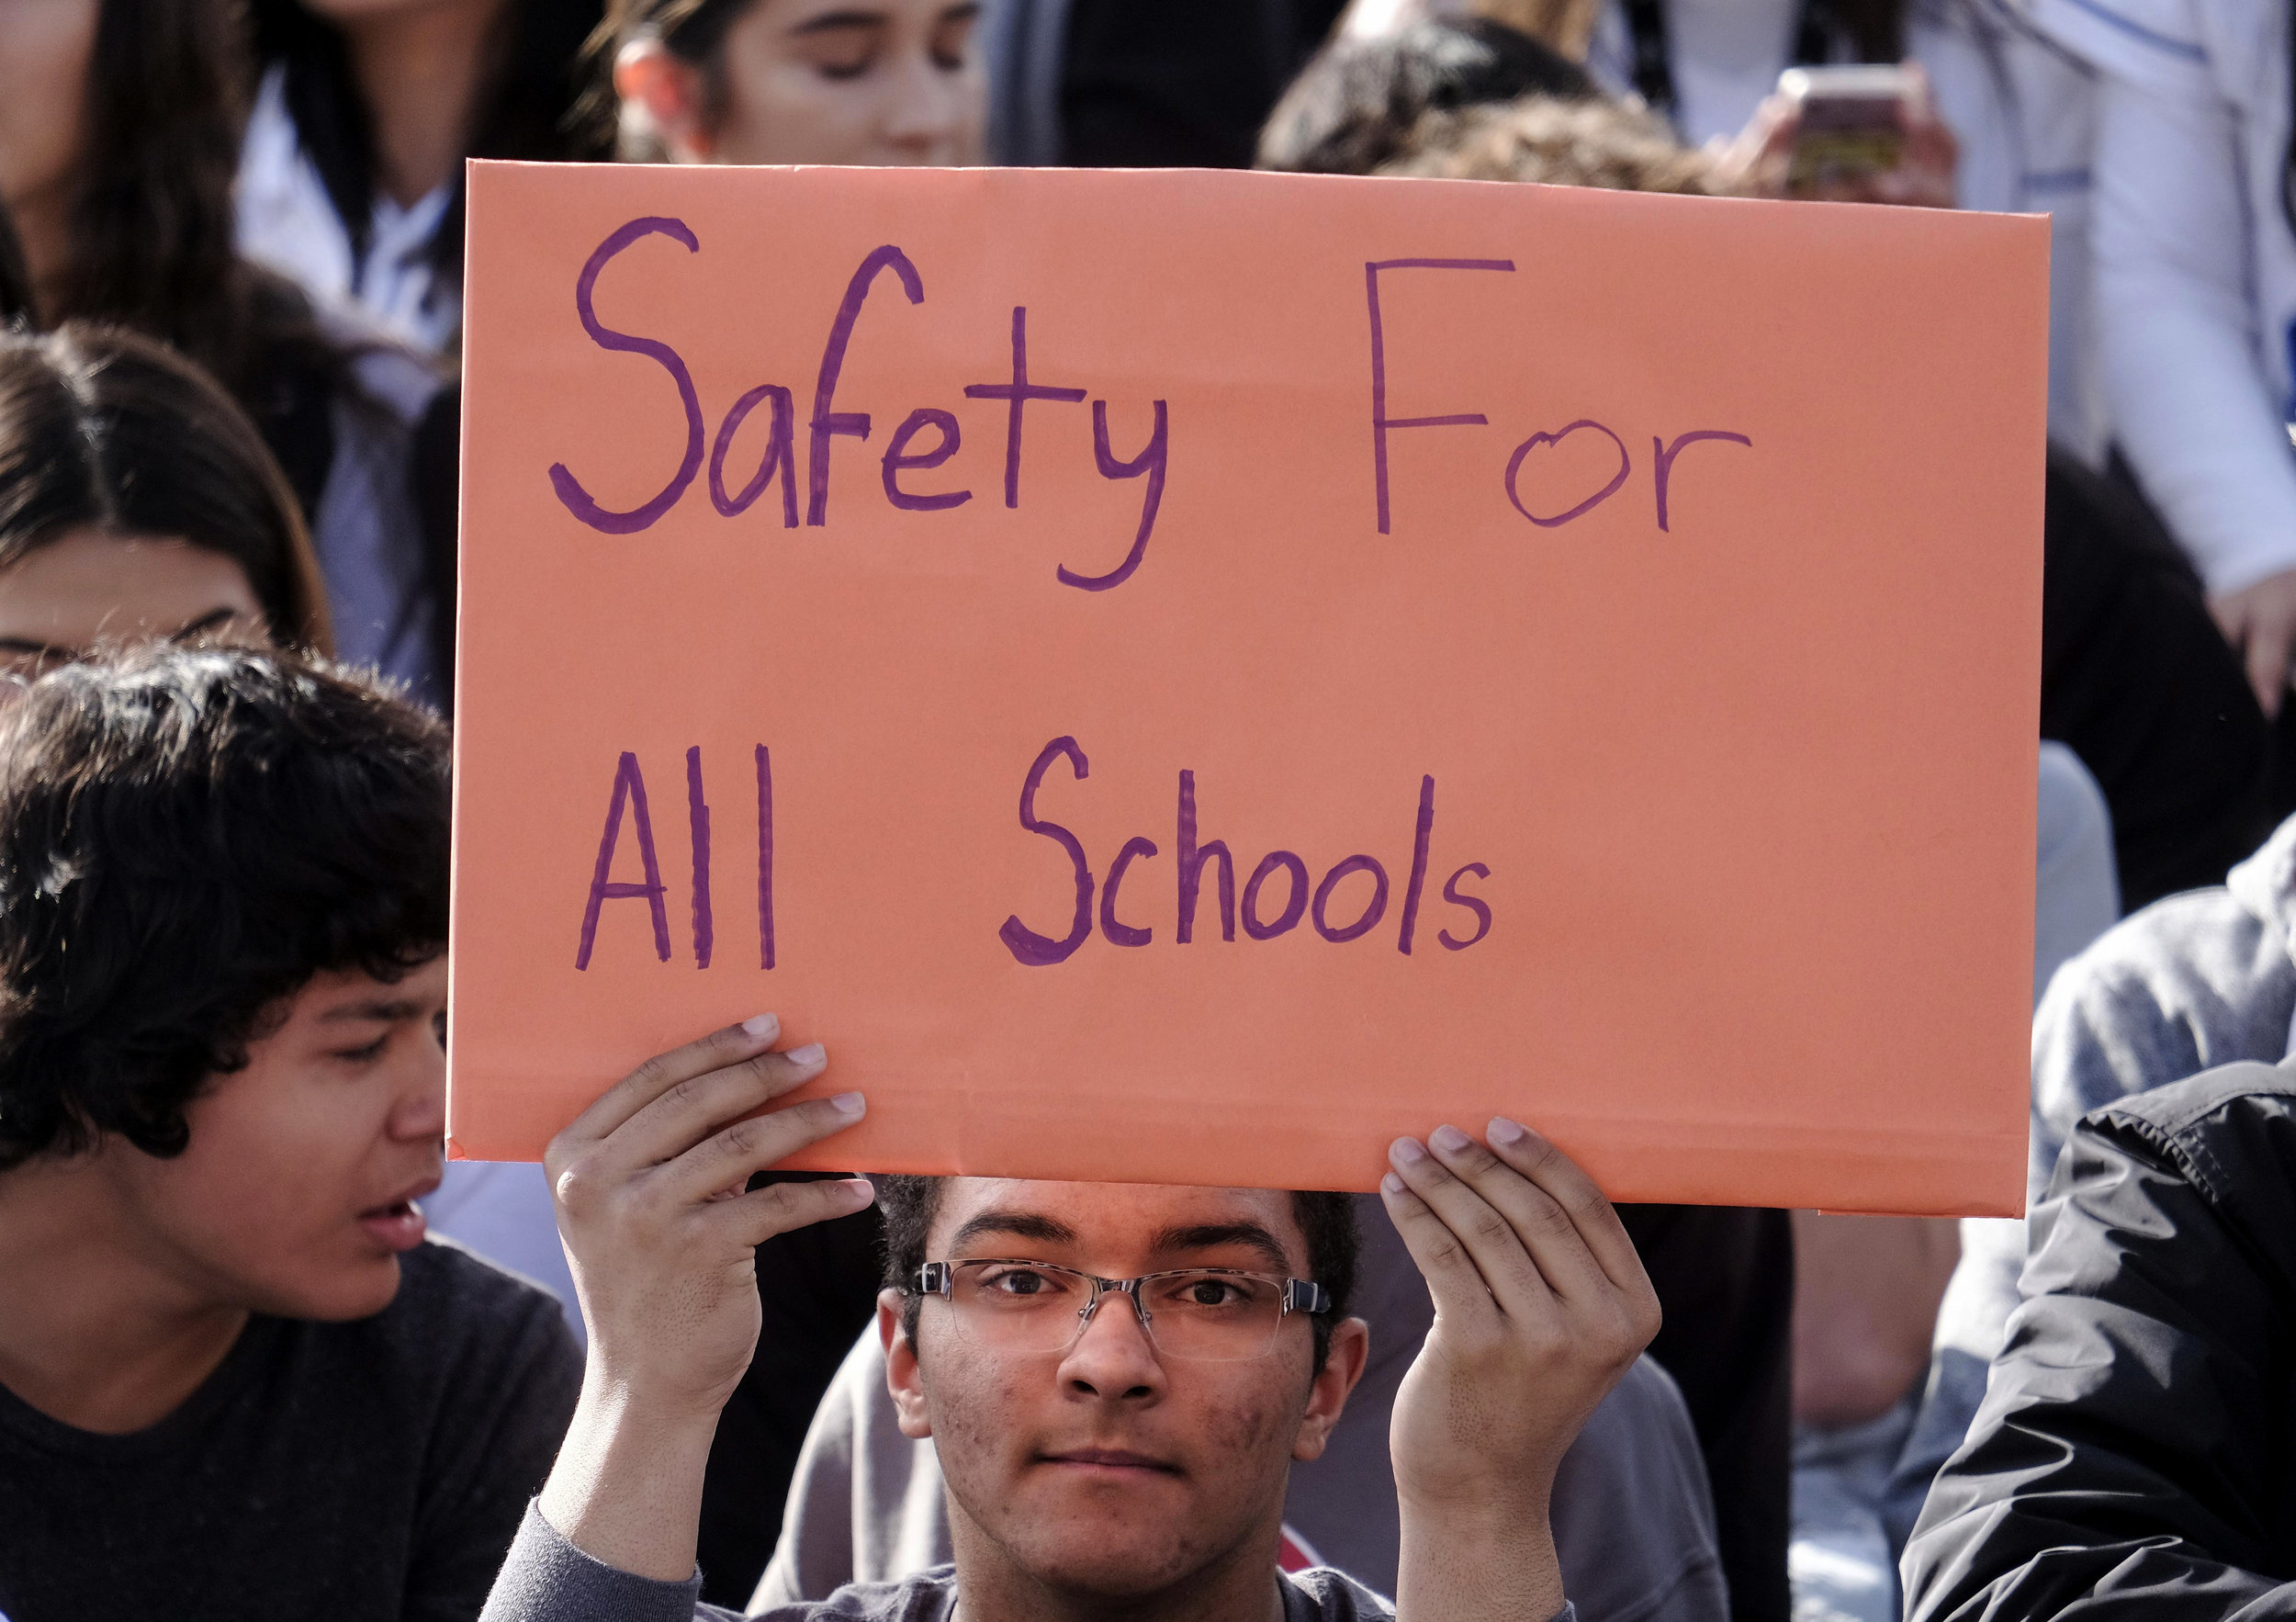 A student from Francis Polytechnic High School holds up a sign during ``#NeverAgain,'' an assembly which spotlights the meaning of school safety for students as part of a nationwide protest against gun violence, Wednesday, March 14, 2018, in Los Angeles.